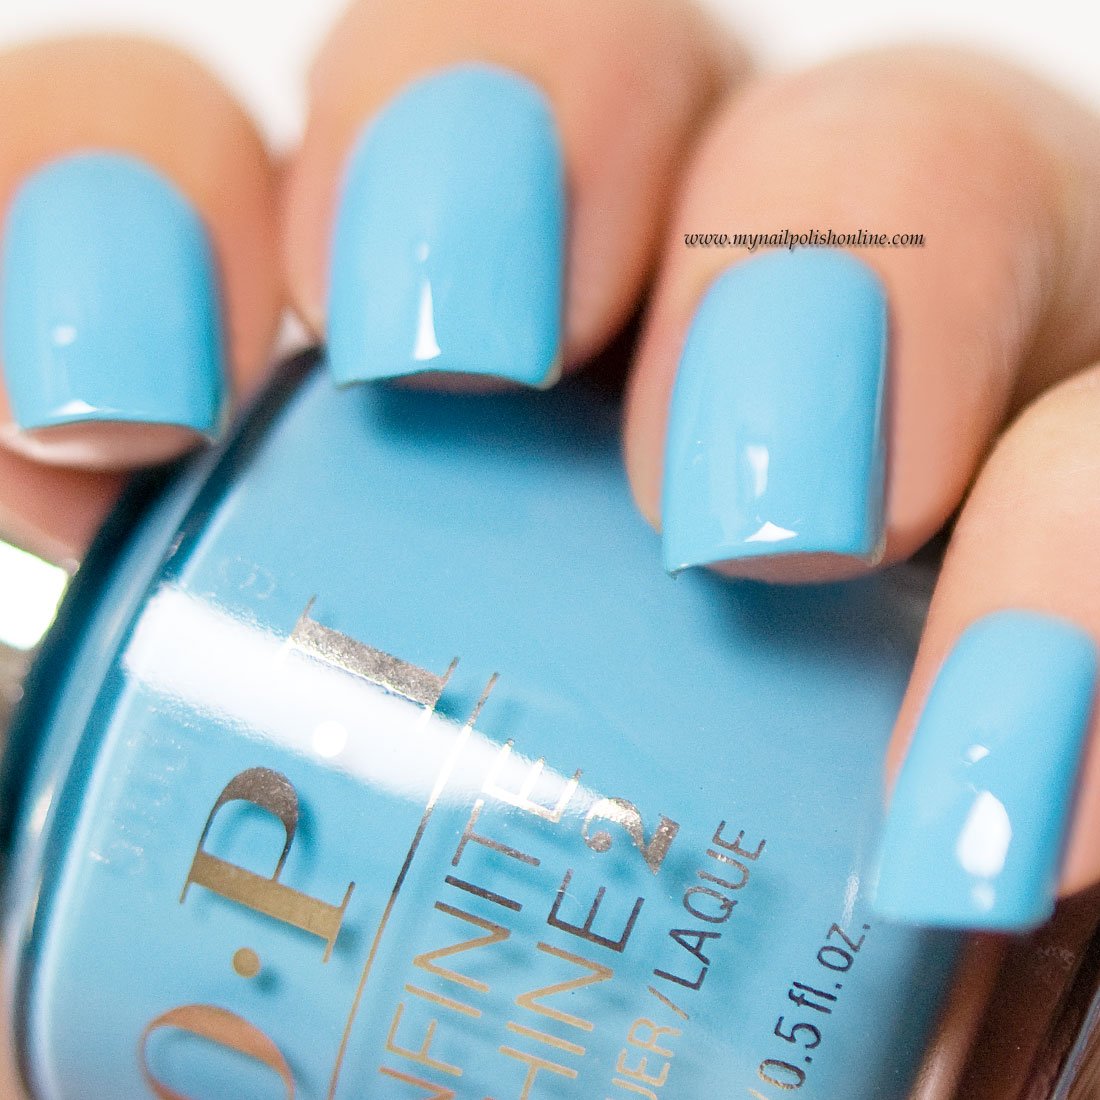 OPI Infinity Shine - To Infinity and Blue-yond - My Nail Polish Online